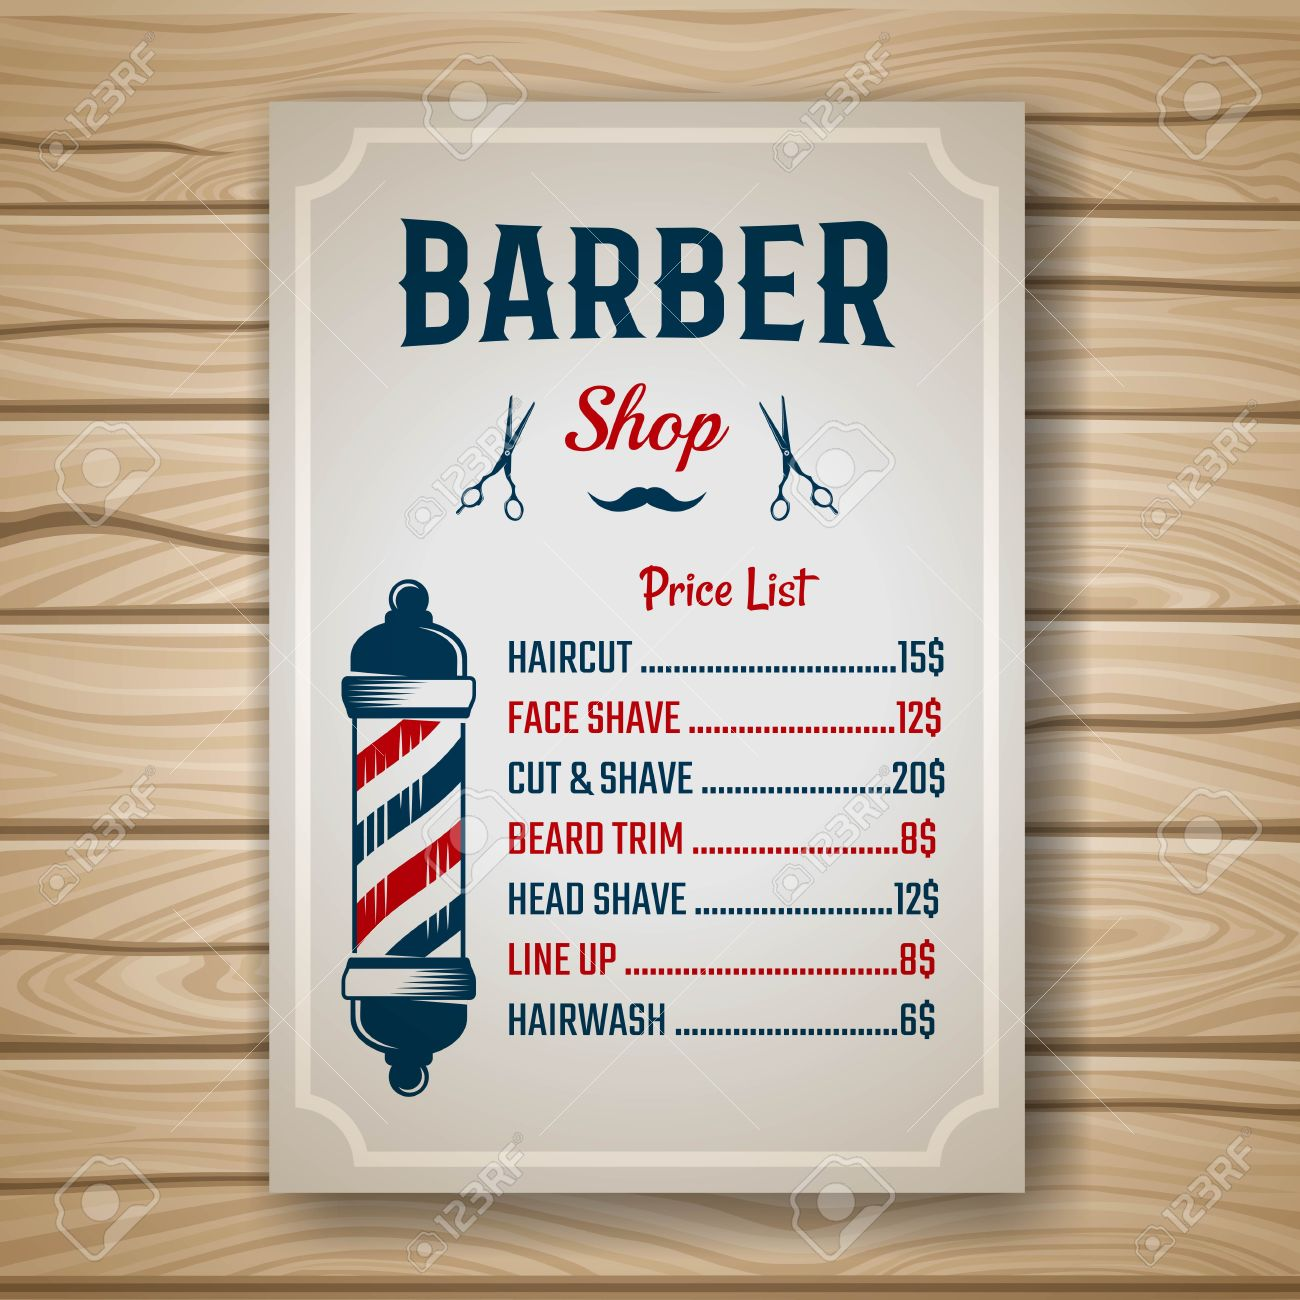 barber shop colored price or brochure list with prices at the